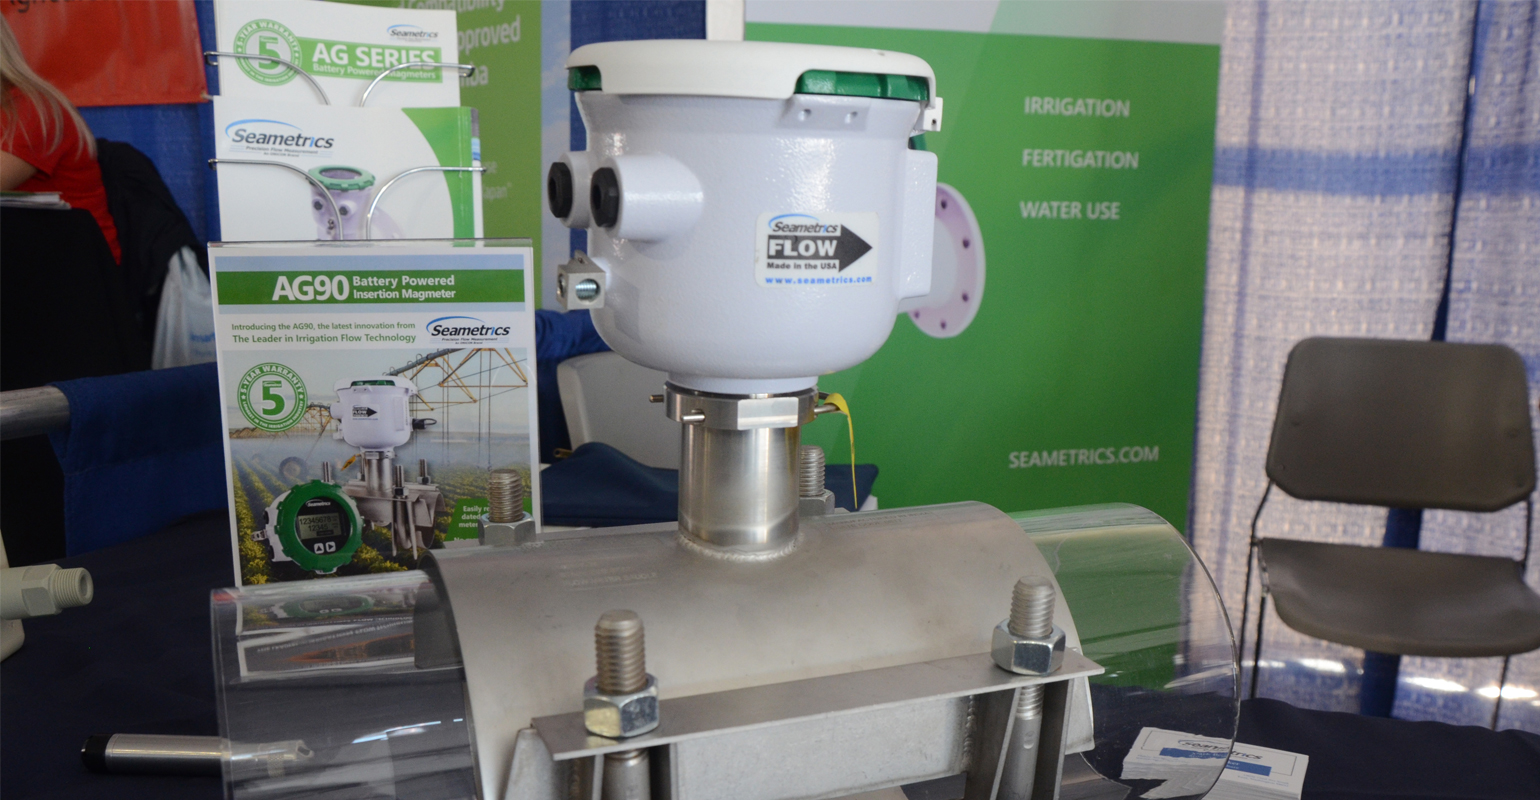 AG90 insertion magmeter from Seametrics